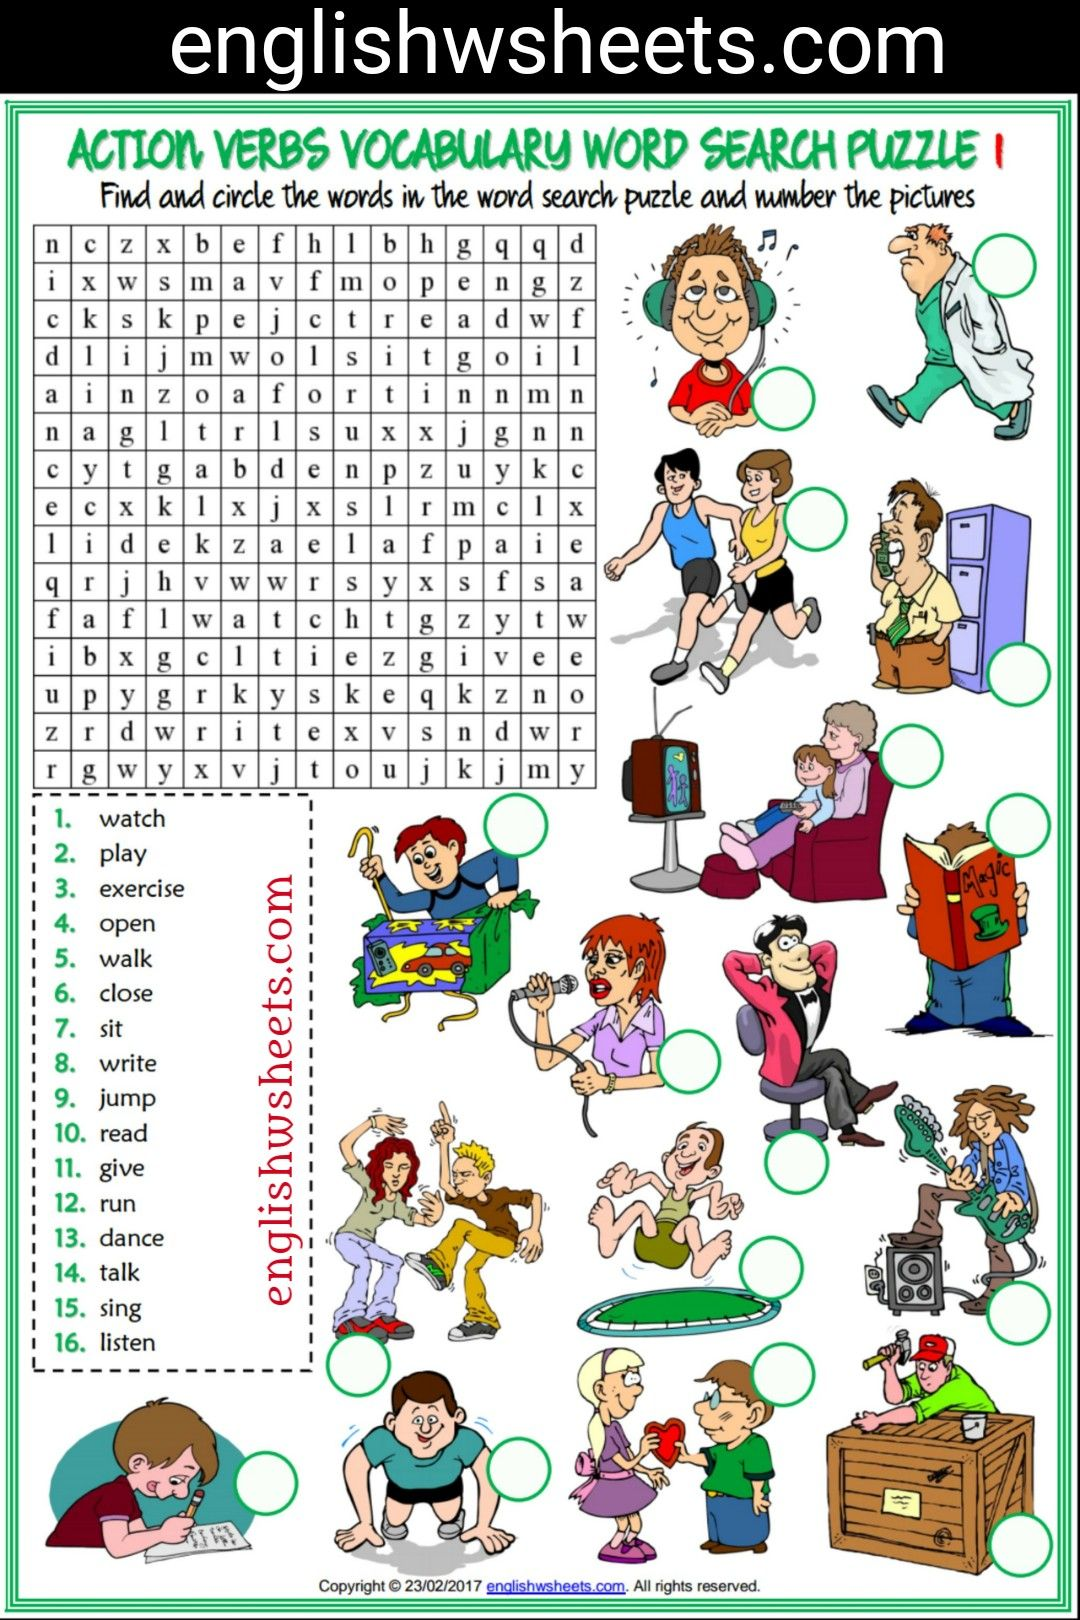 Action Verbs Esl Printable Word Search Puzzle Worksheets For Kids Action Verbs Actionverbs